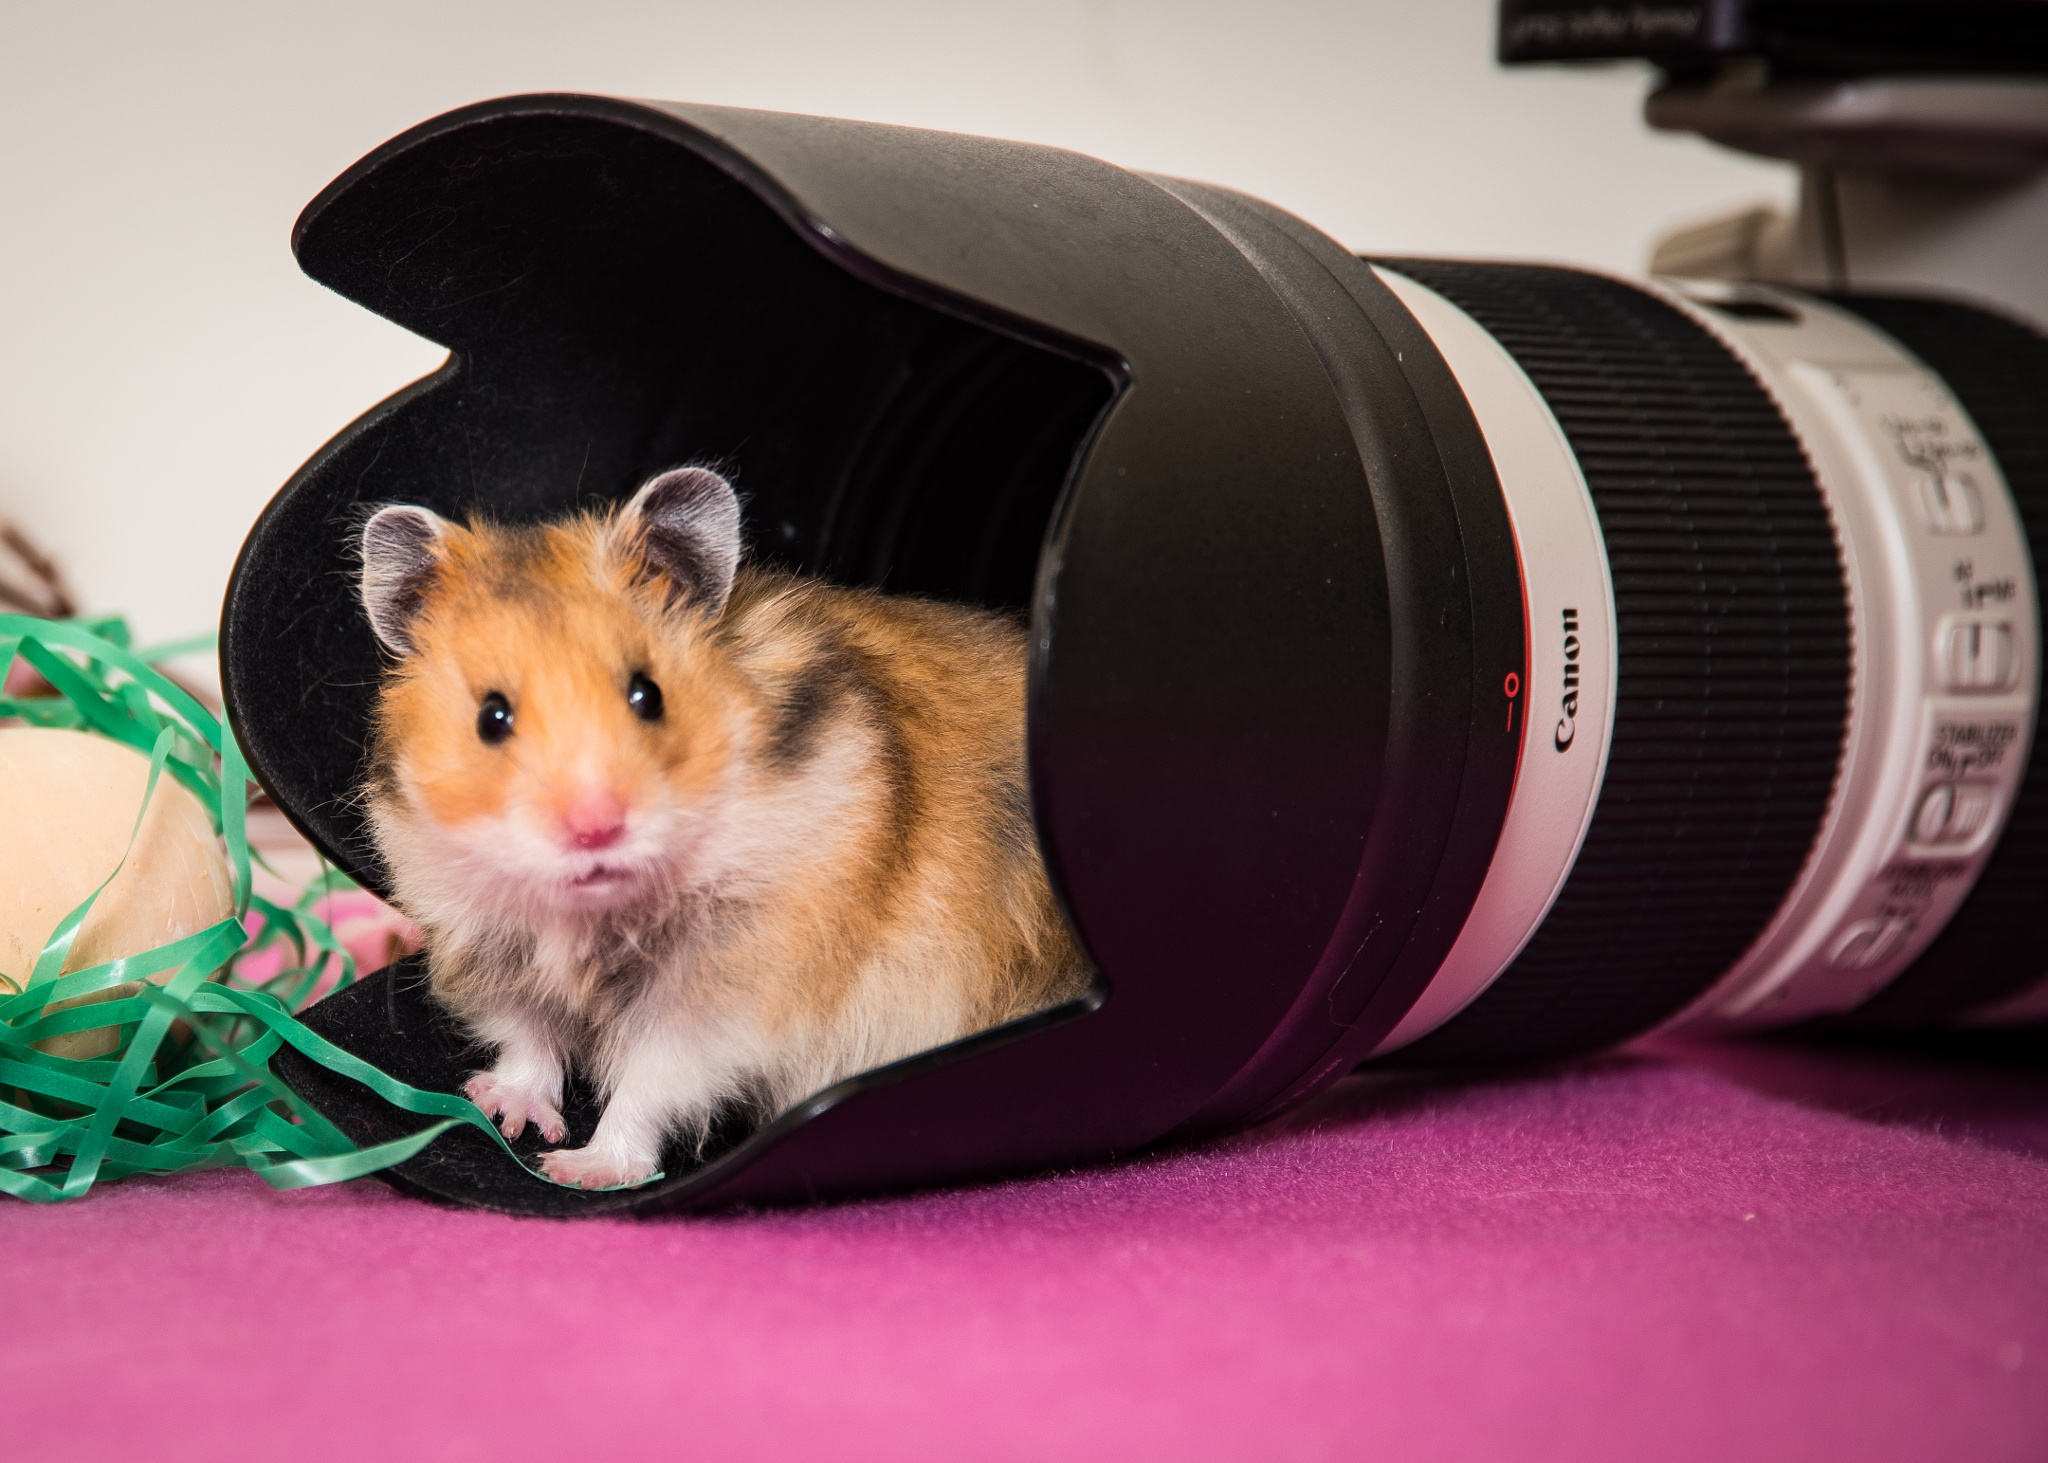 Hamster in the 'Hood by Janis Knight / Home Planet Images